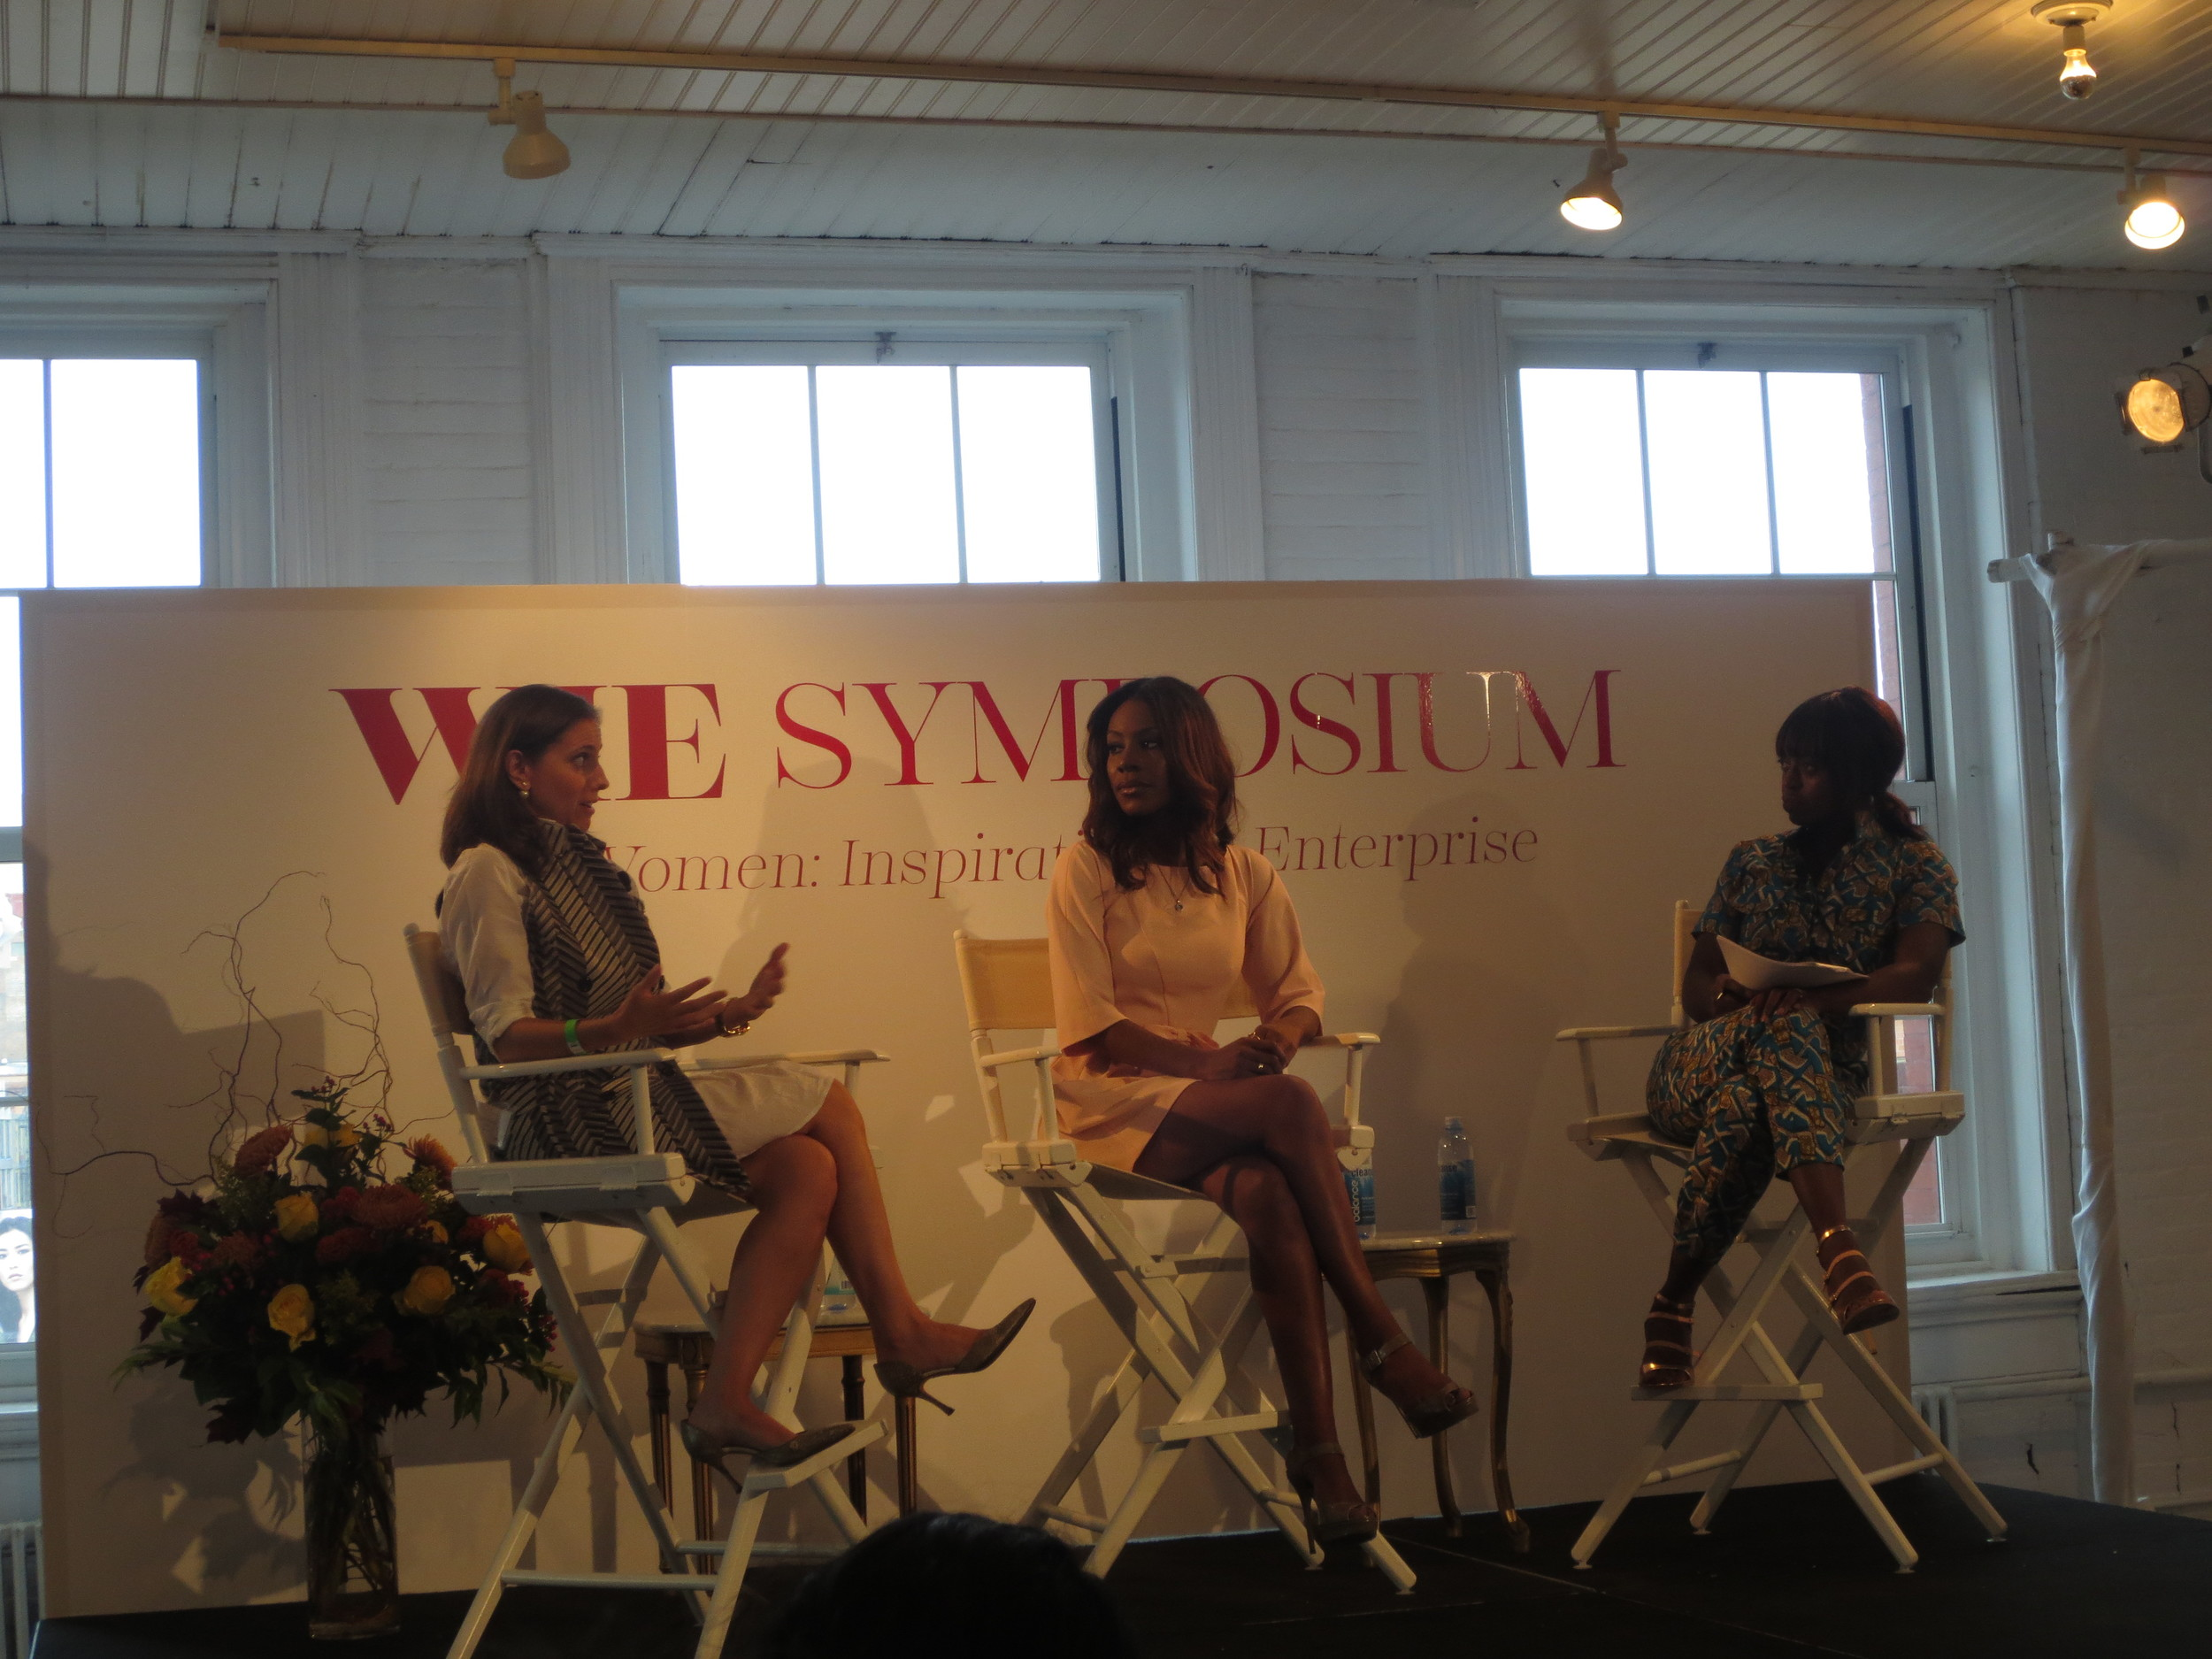 Elana Nathan, CEO of Peter Som and Amma Asante, Director of the film Belle speak with Dee Poku, WIE co-founder, on Balancing Business and Creative.